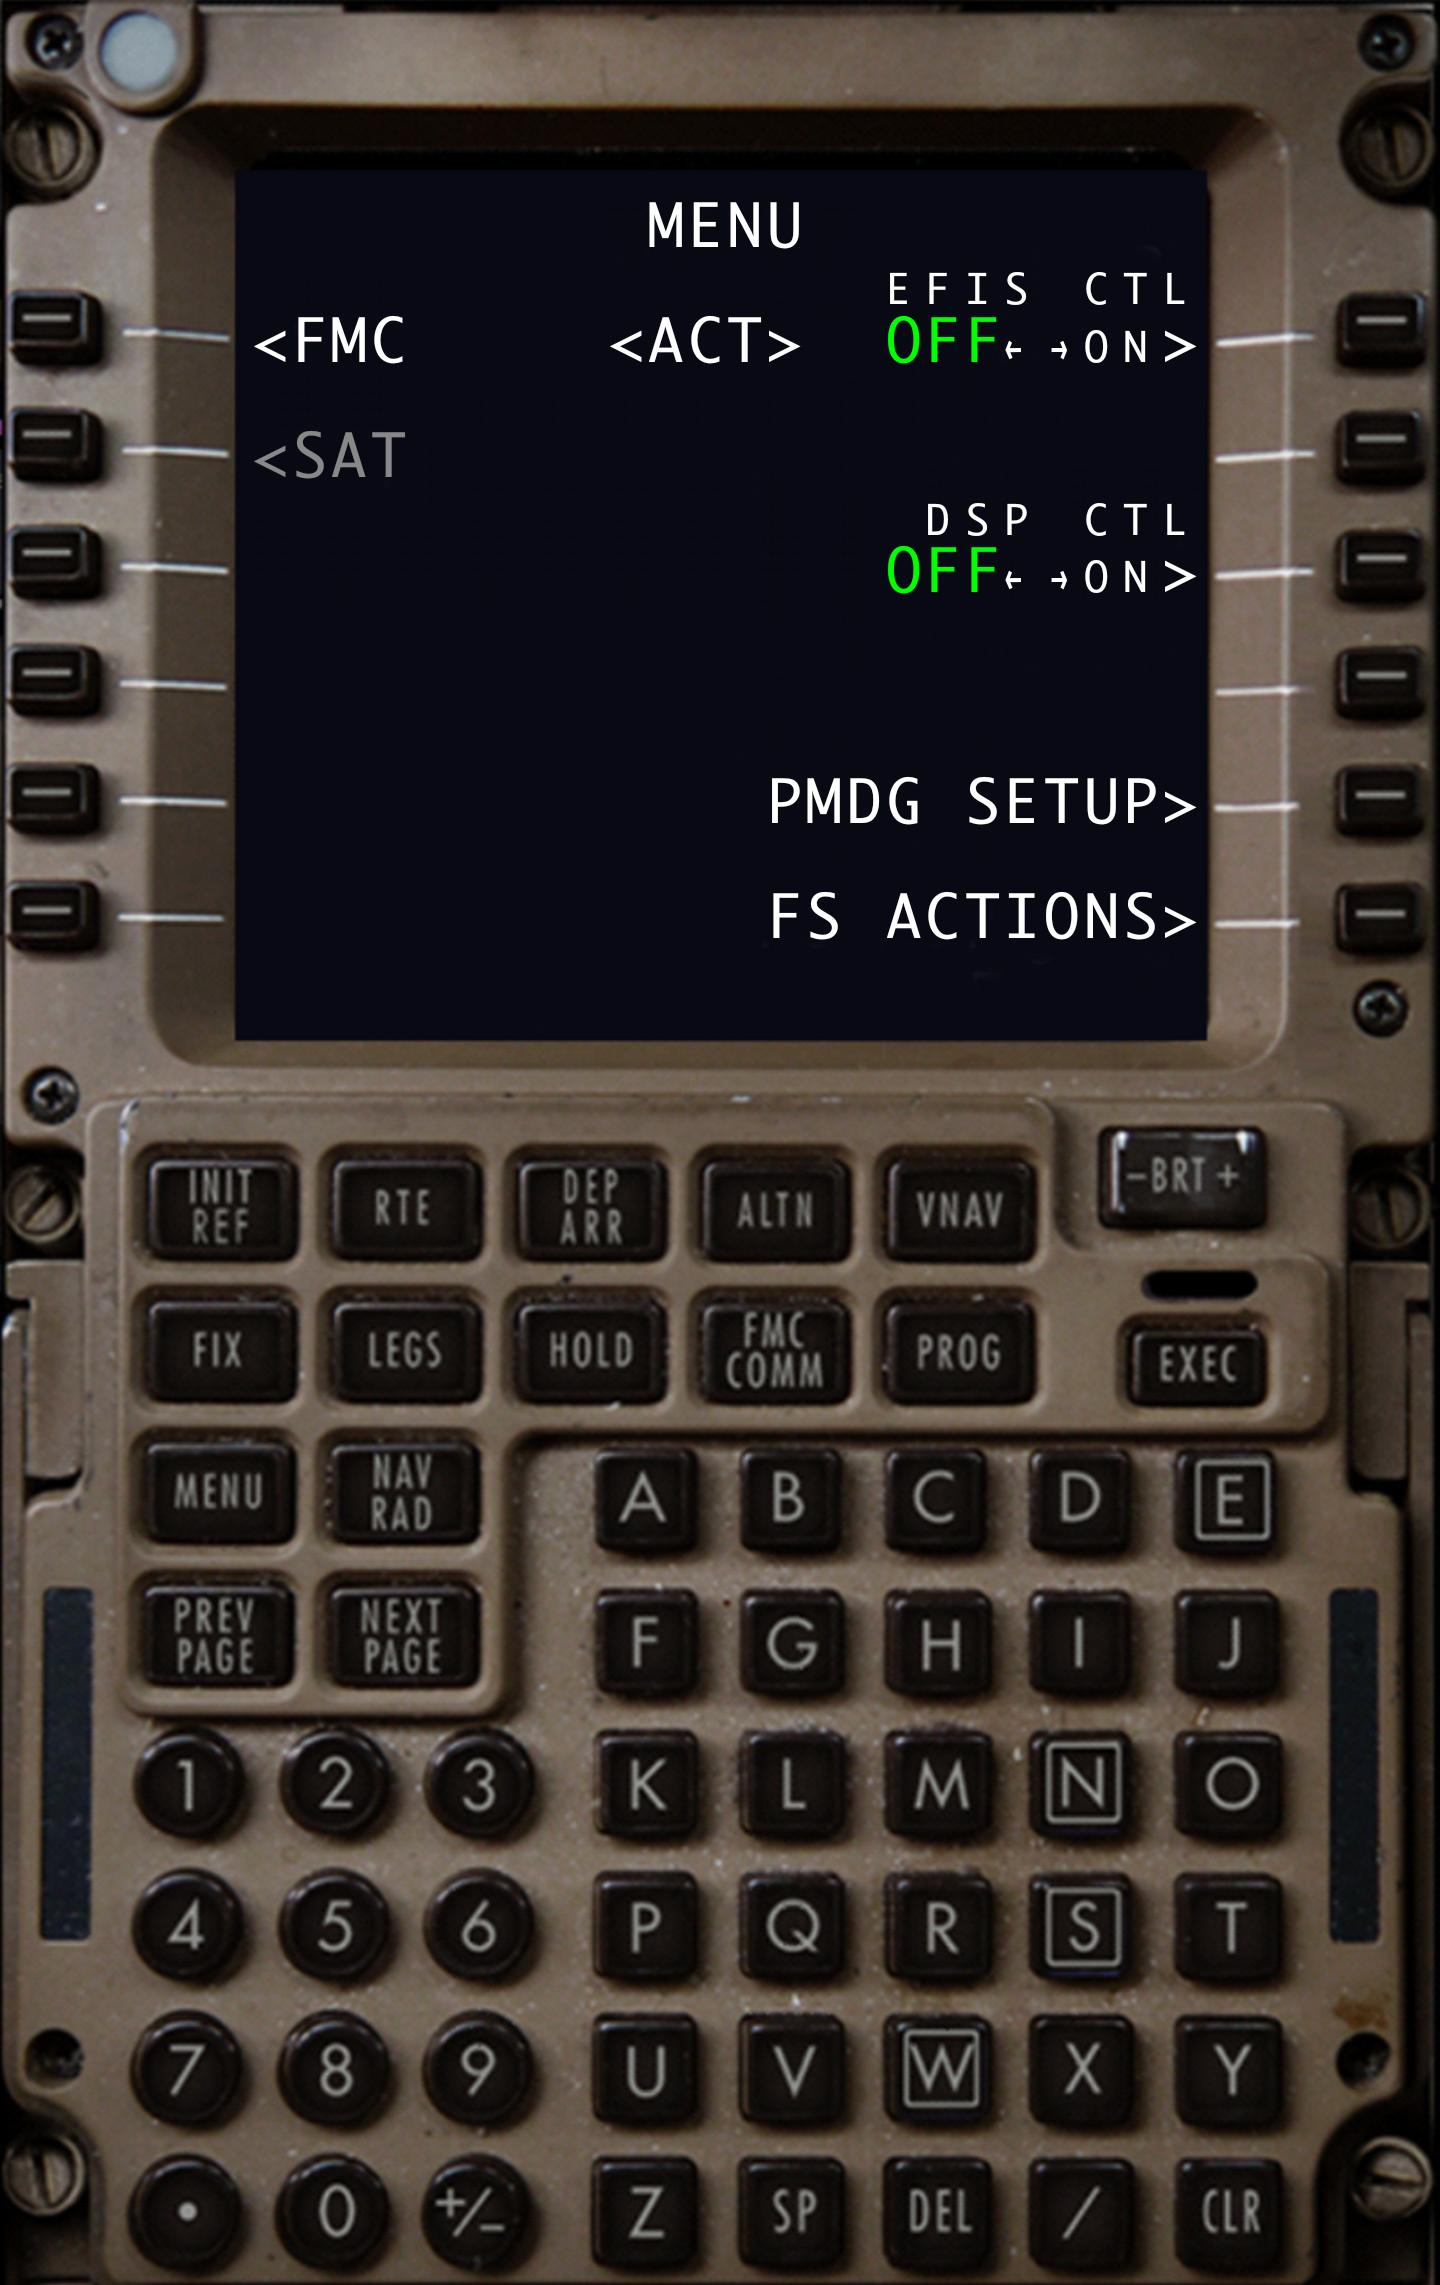 PMDG CDU DEVICE for Android - APK Download